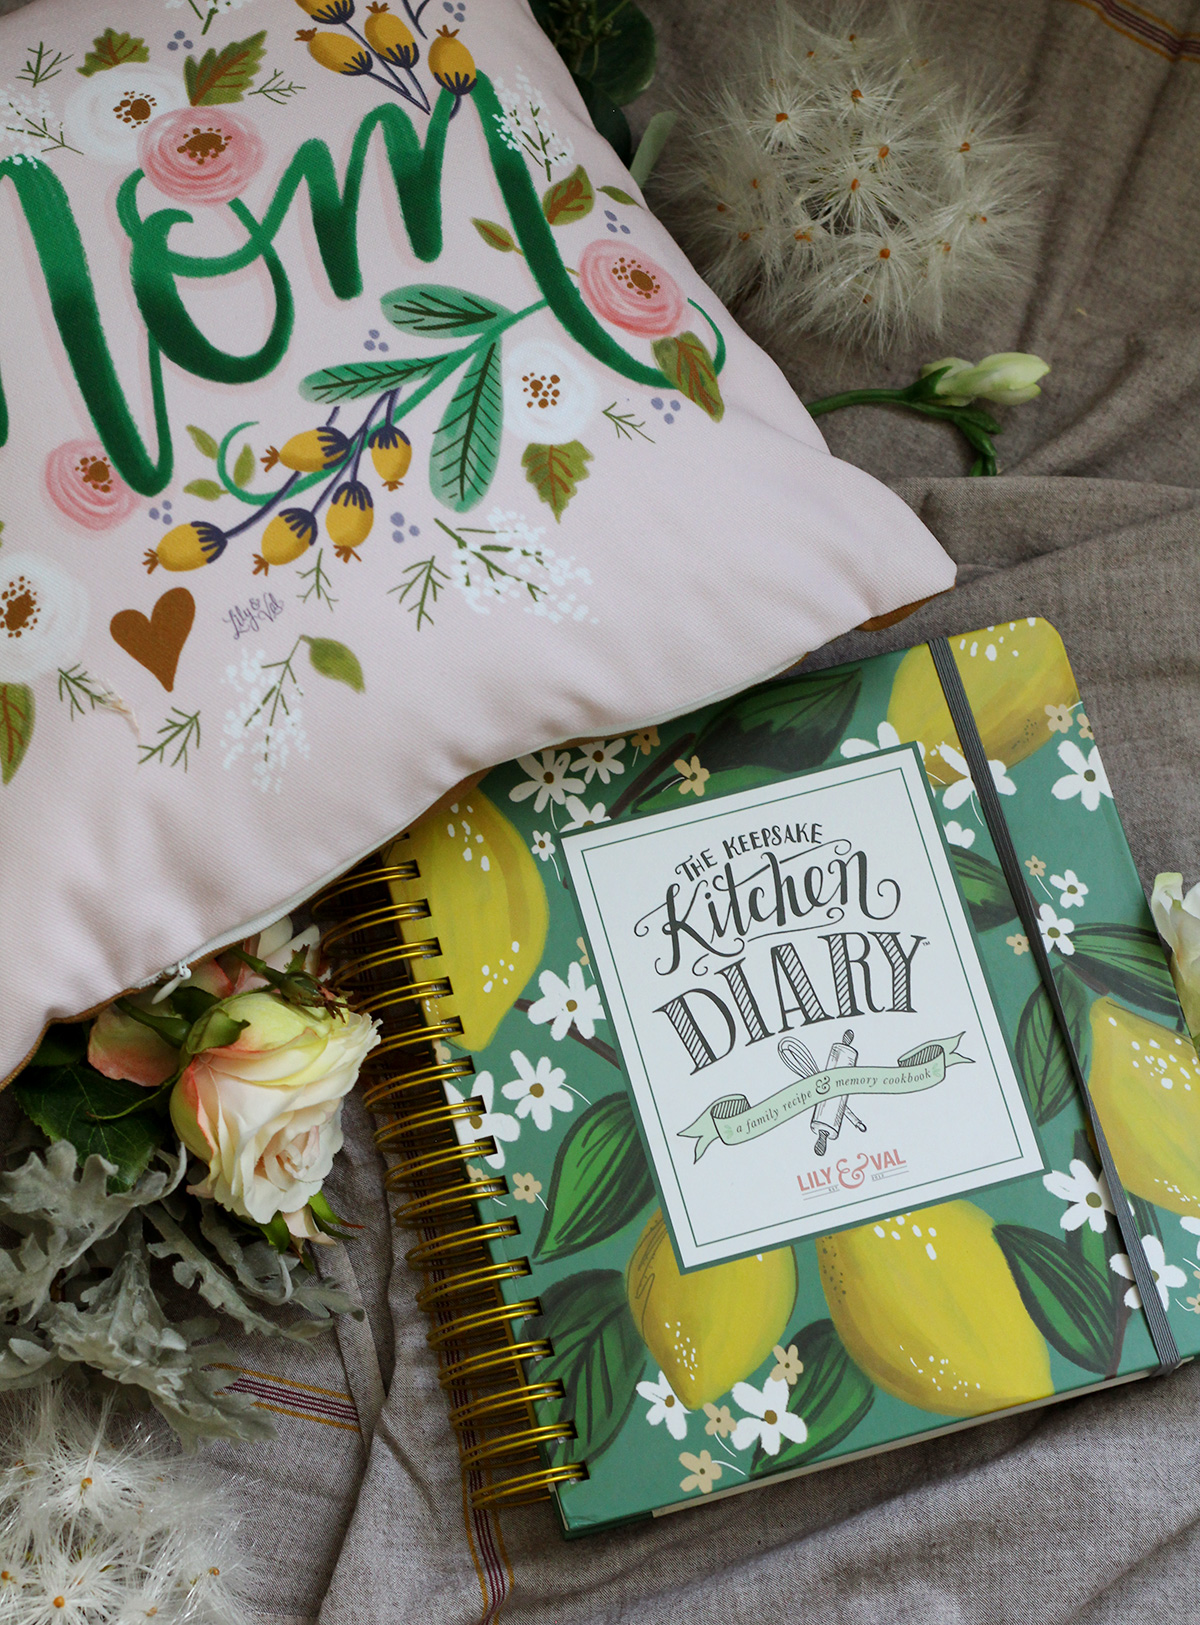 Limited Edition Handmade Pillows Are Here For Mother's Day + Keepsake Kitchen Diary and you have a beautiful gift for Mom